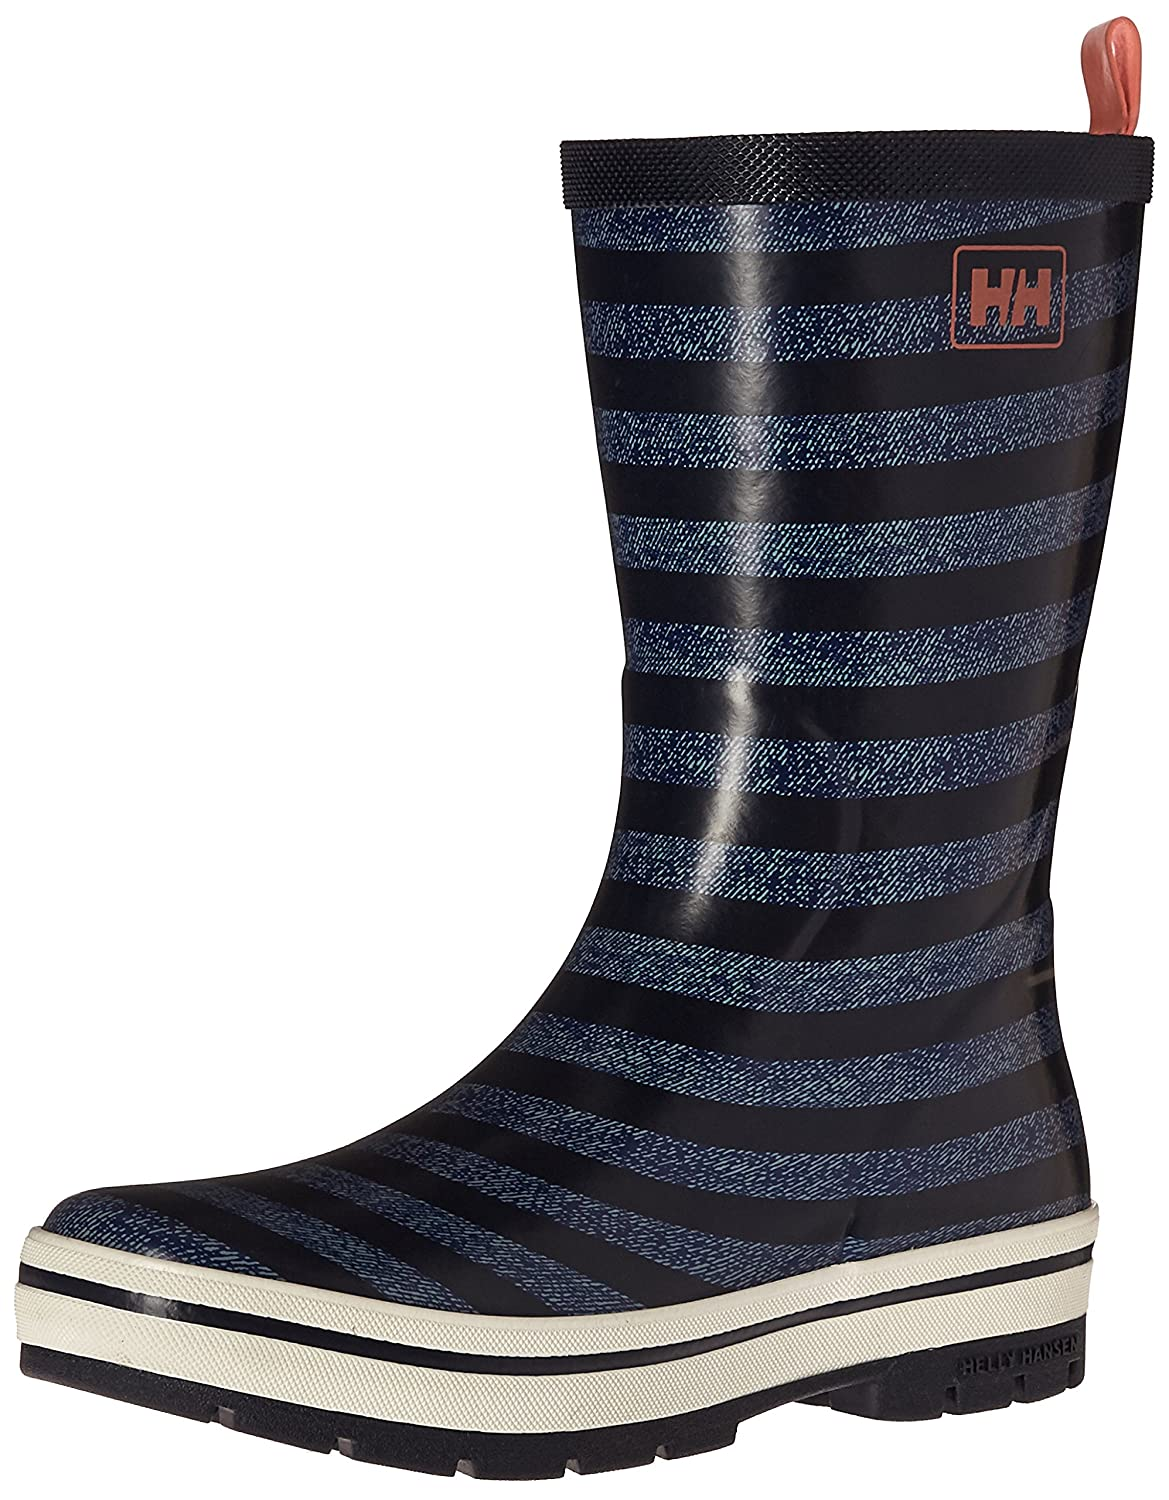 Helly Hansen Women's Midsund 2 Graphic Rain Boot B01GNSHWRG 8 B(M) US|Night Blue/Charcoal/Evening Blue/Bright Bloom/Blanc De Blanc